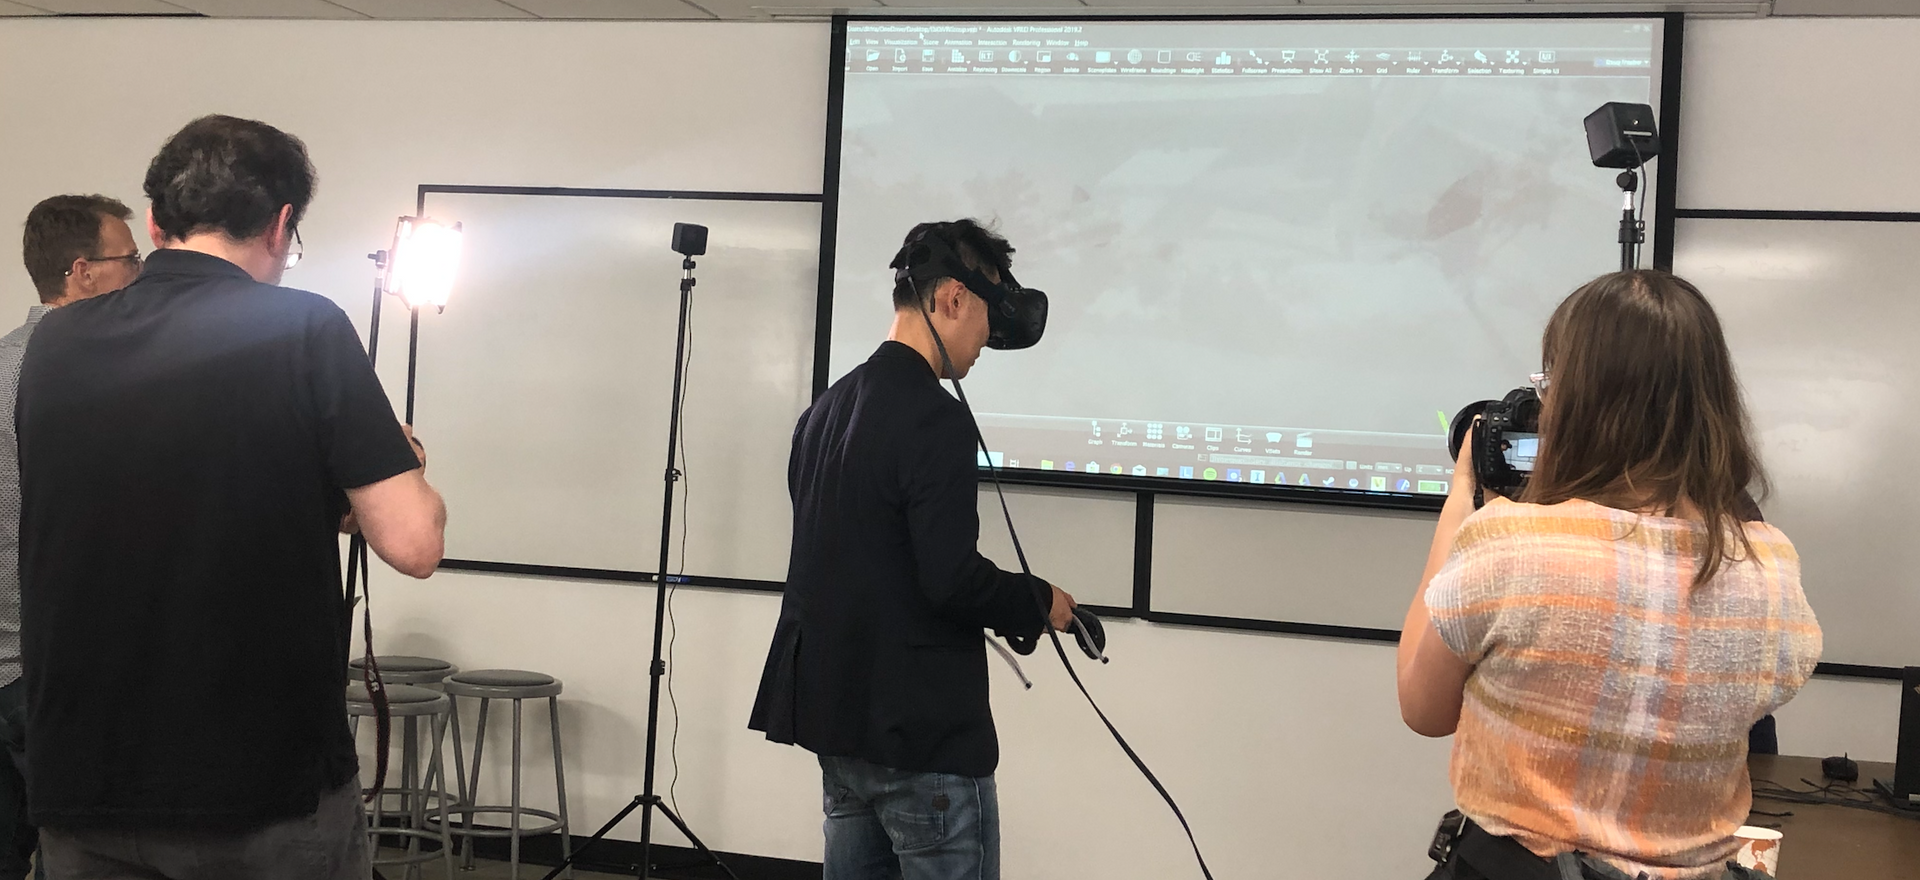 VR to View Vehicle Models